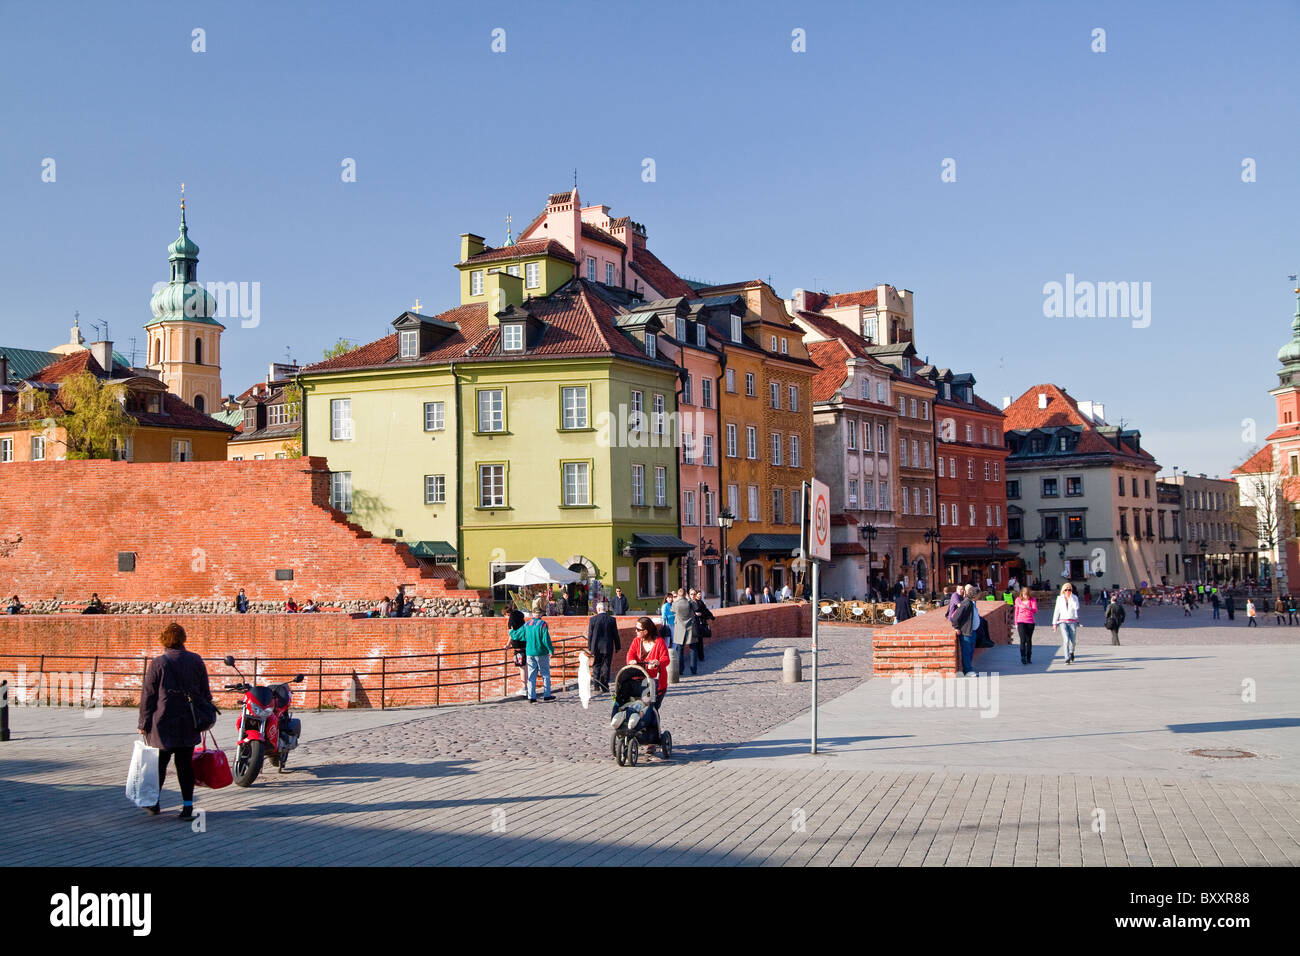 The Castle Square, Warsaw, Poland - Stock Image